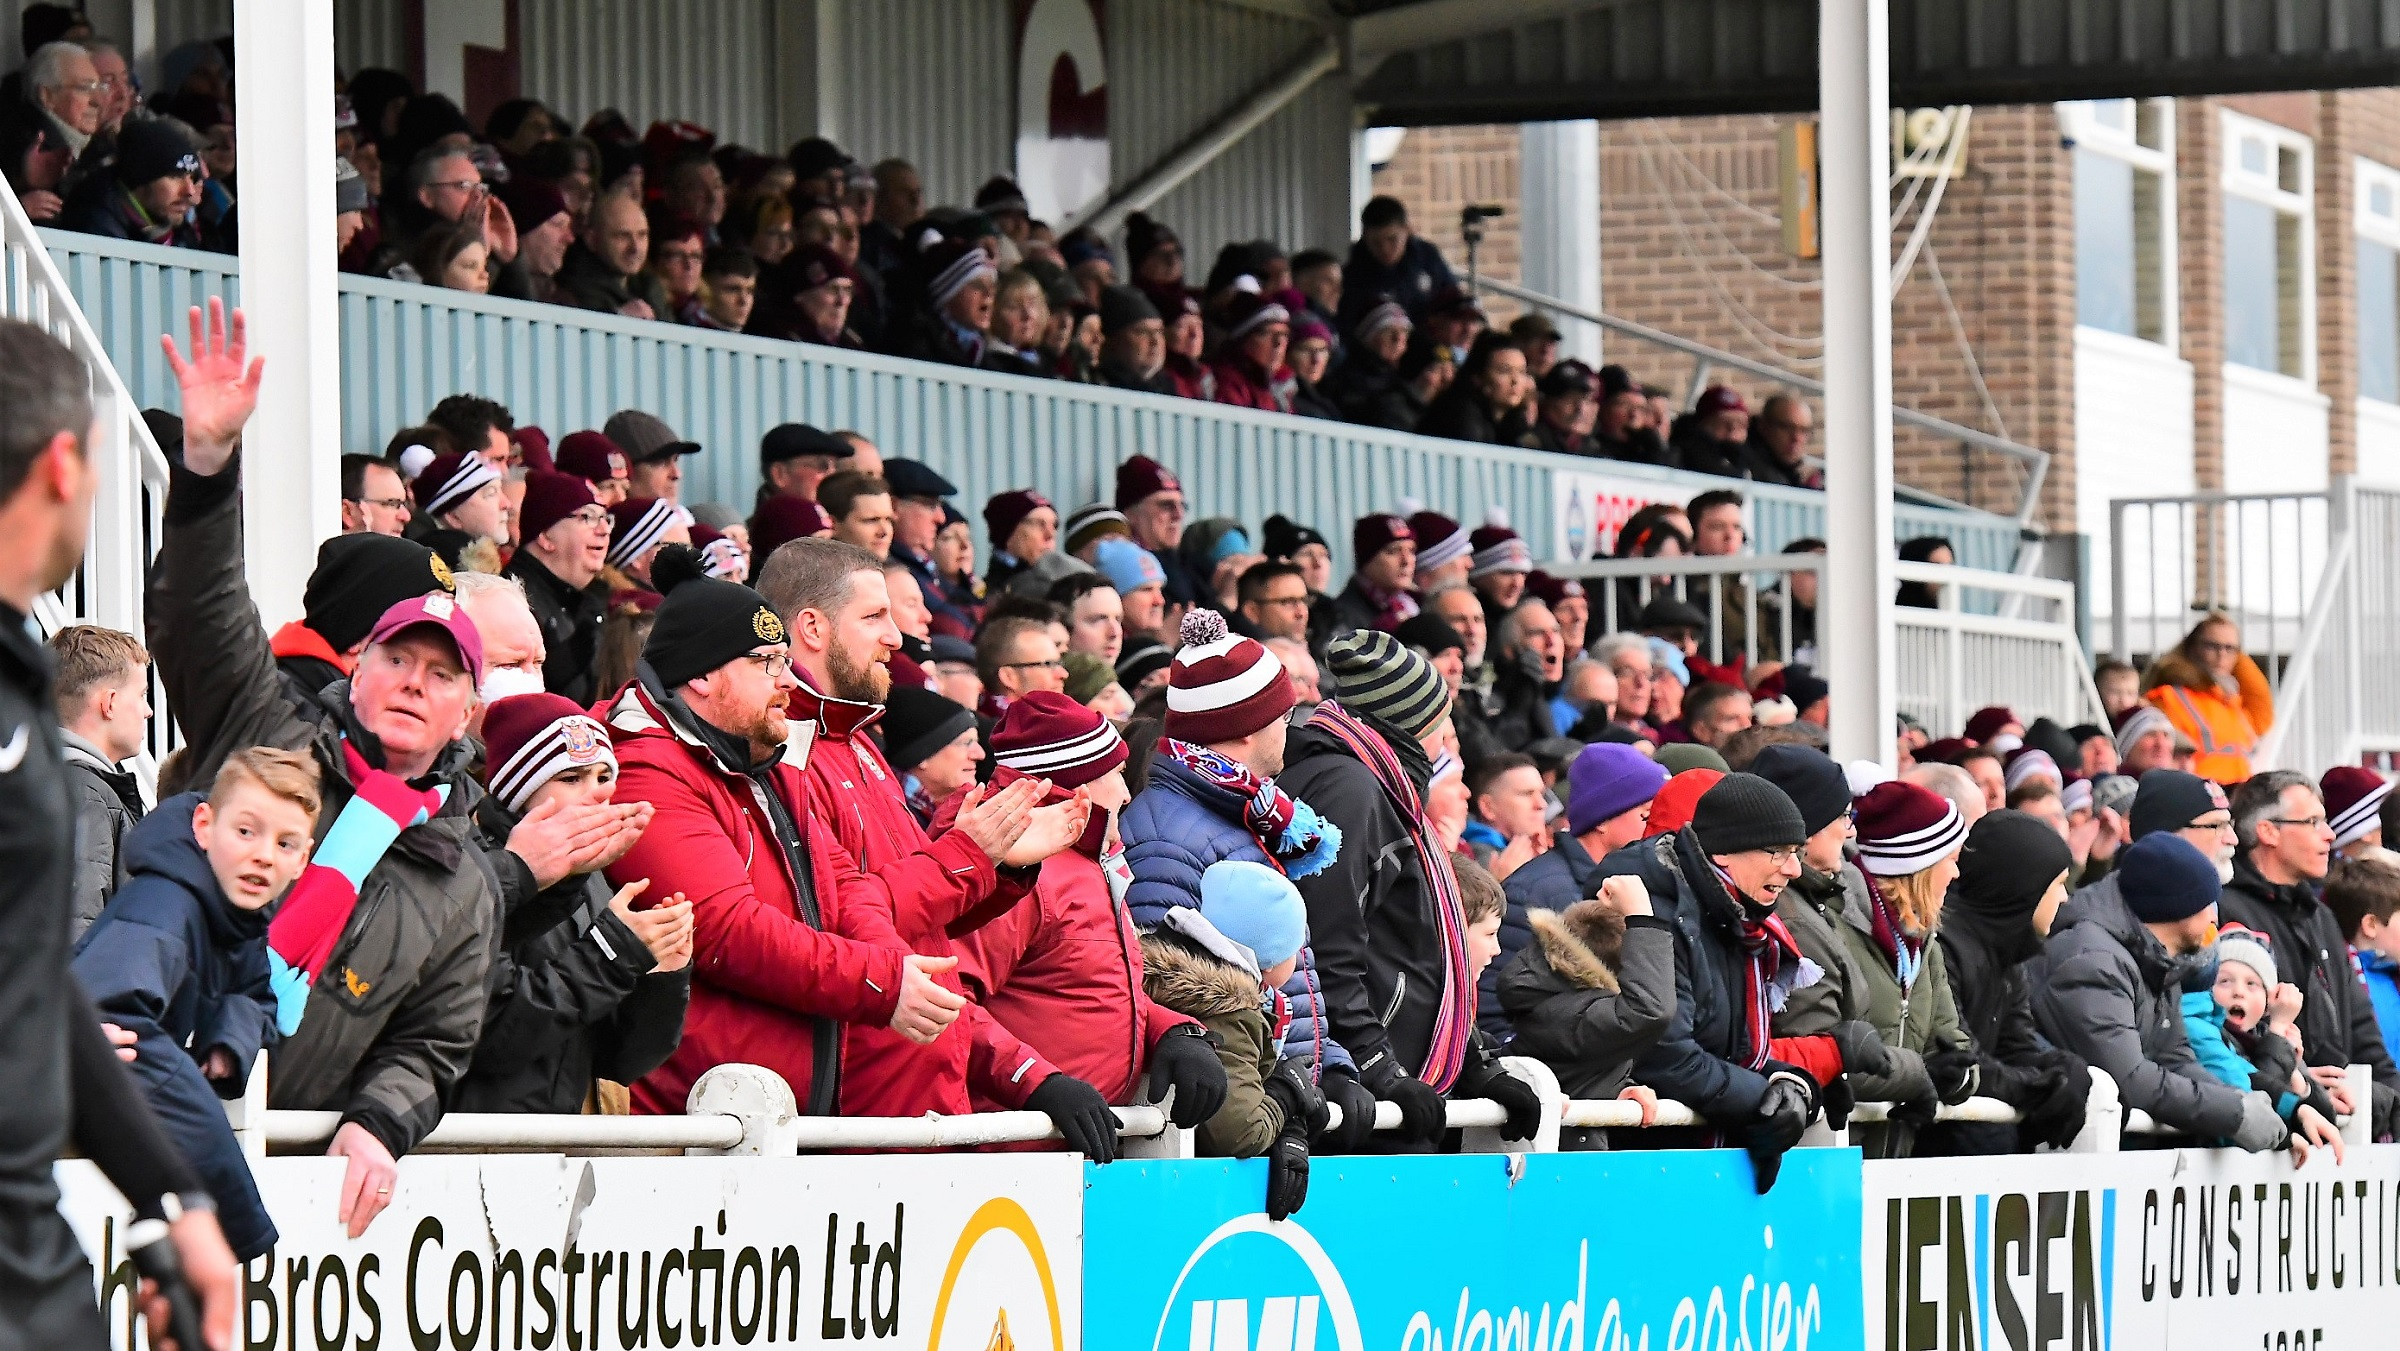 South Shields vs Sunderland: Information for supporters ahead of sold-out friendly